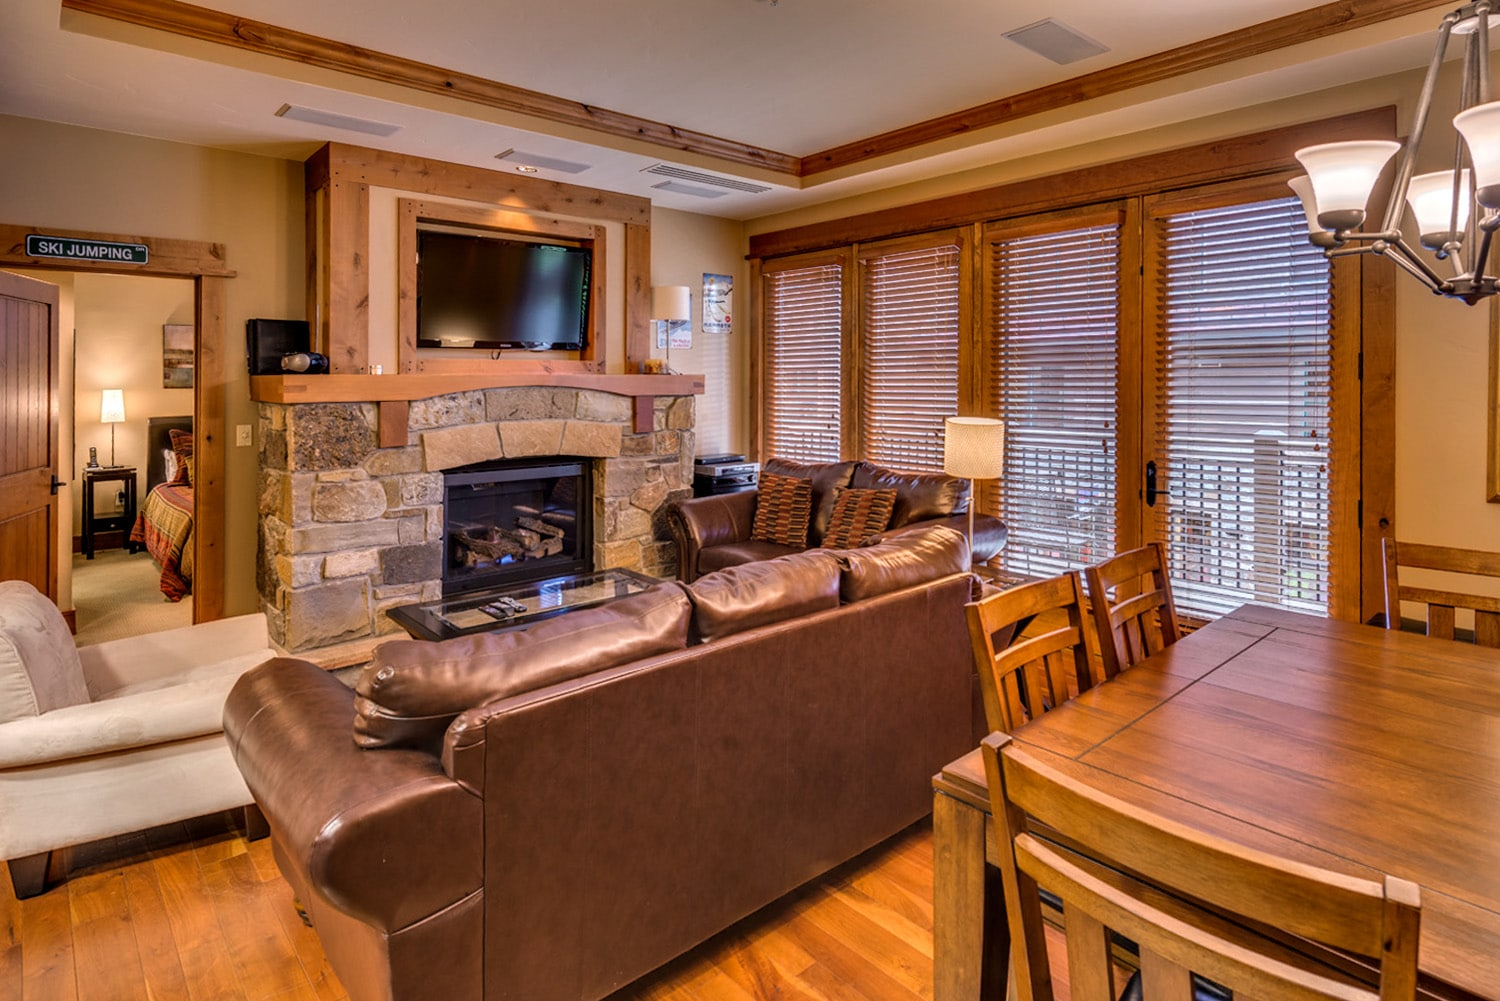 Property Image 1 - Luxury slopeside residence, close to gondola, dining & more